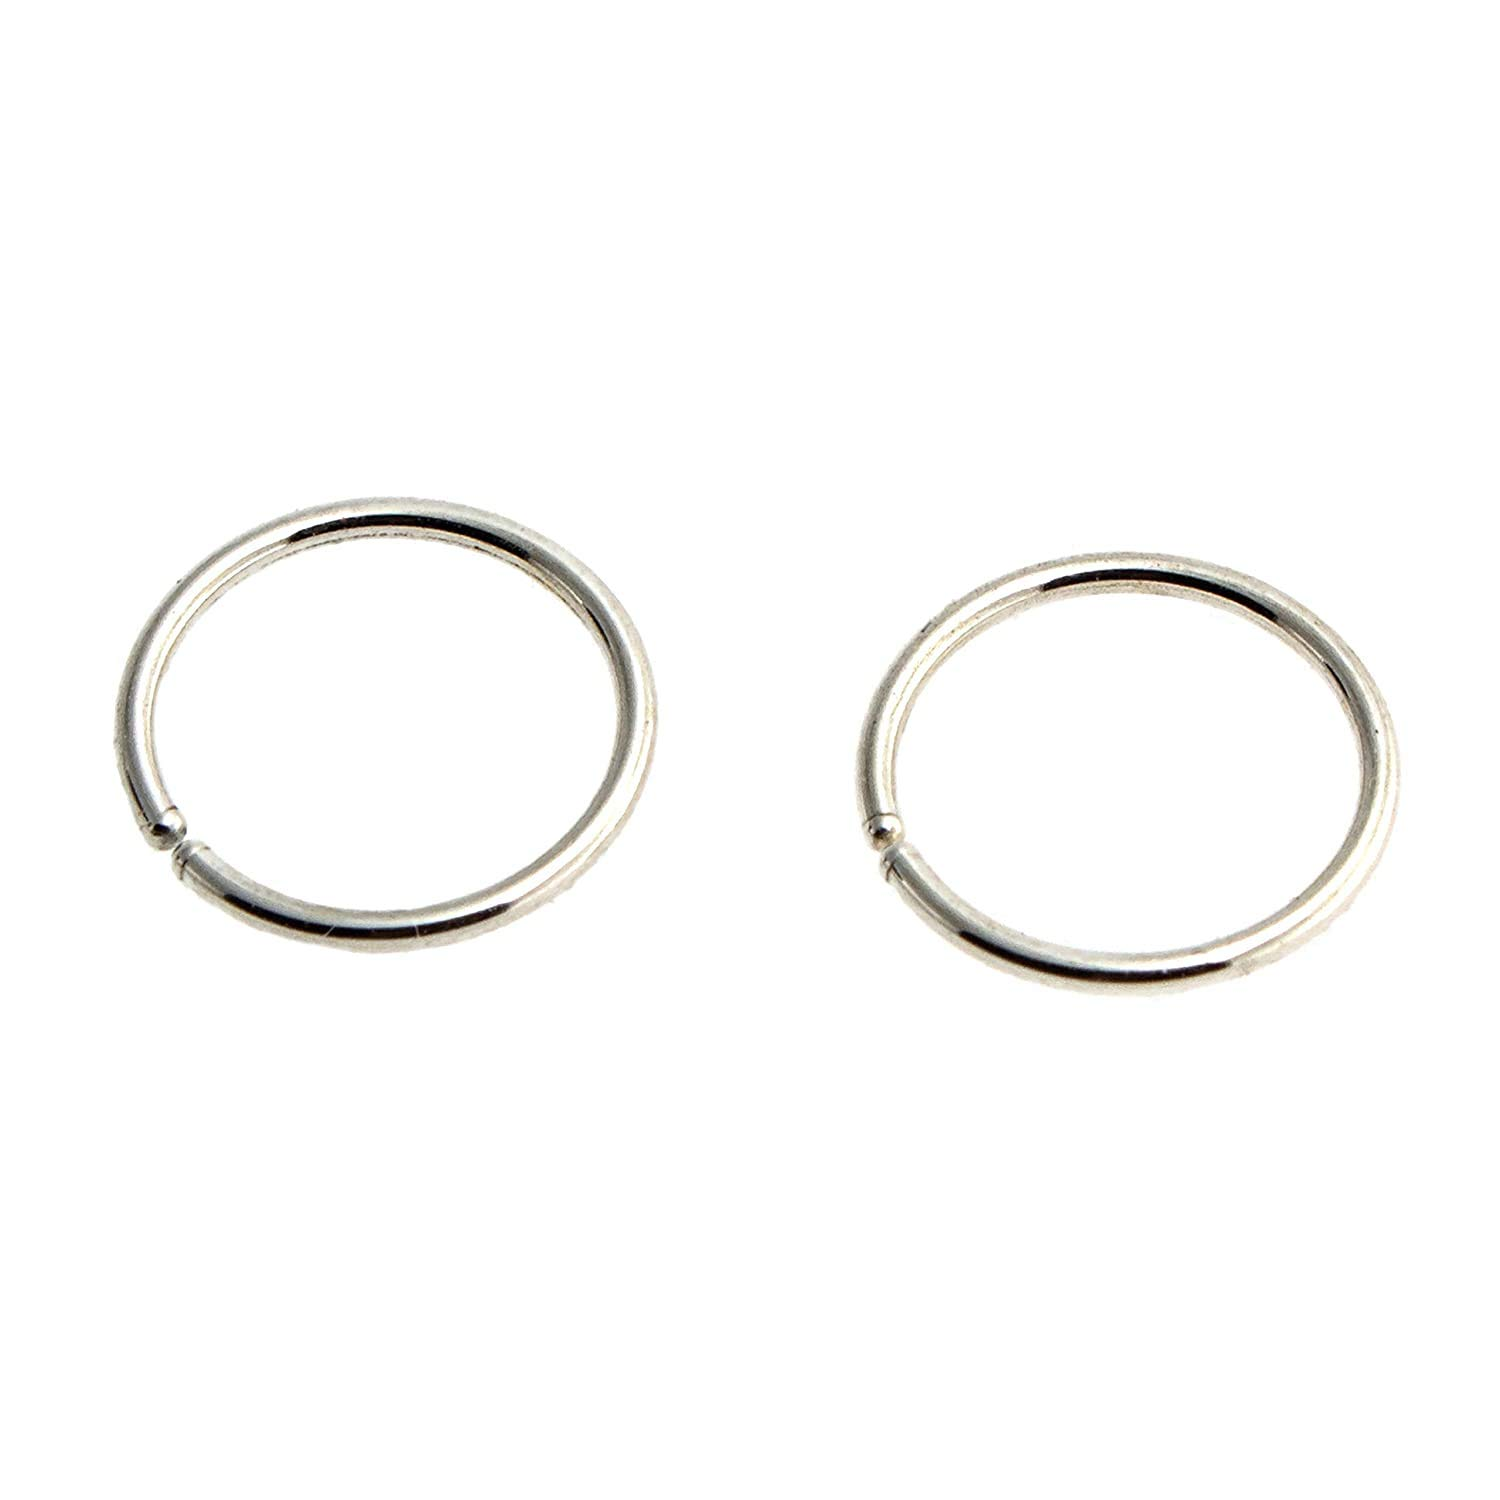 Very popular Open Ring Sterling Silver Wire 18 Gauge 9mm or Outlet SALE Ca 0.35 Inch Hoop